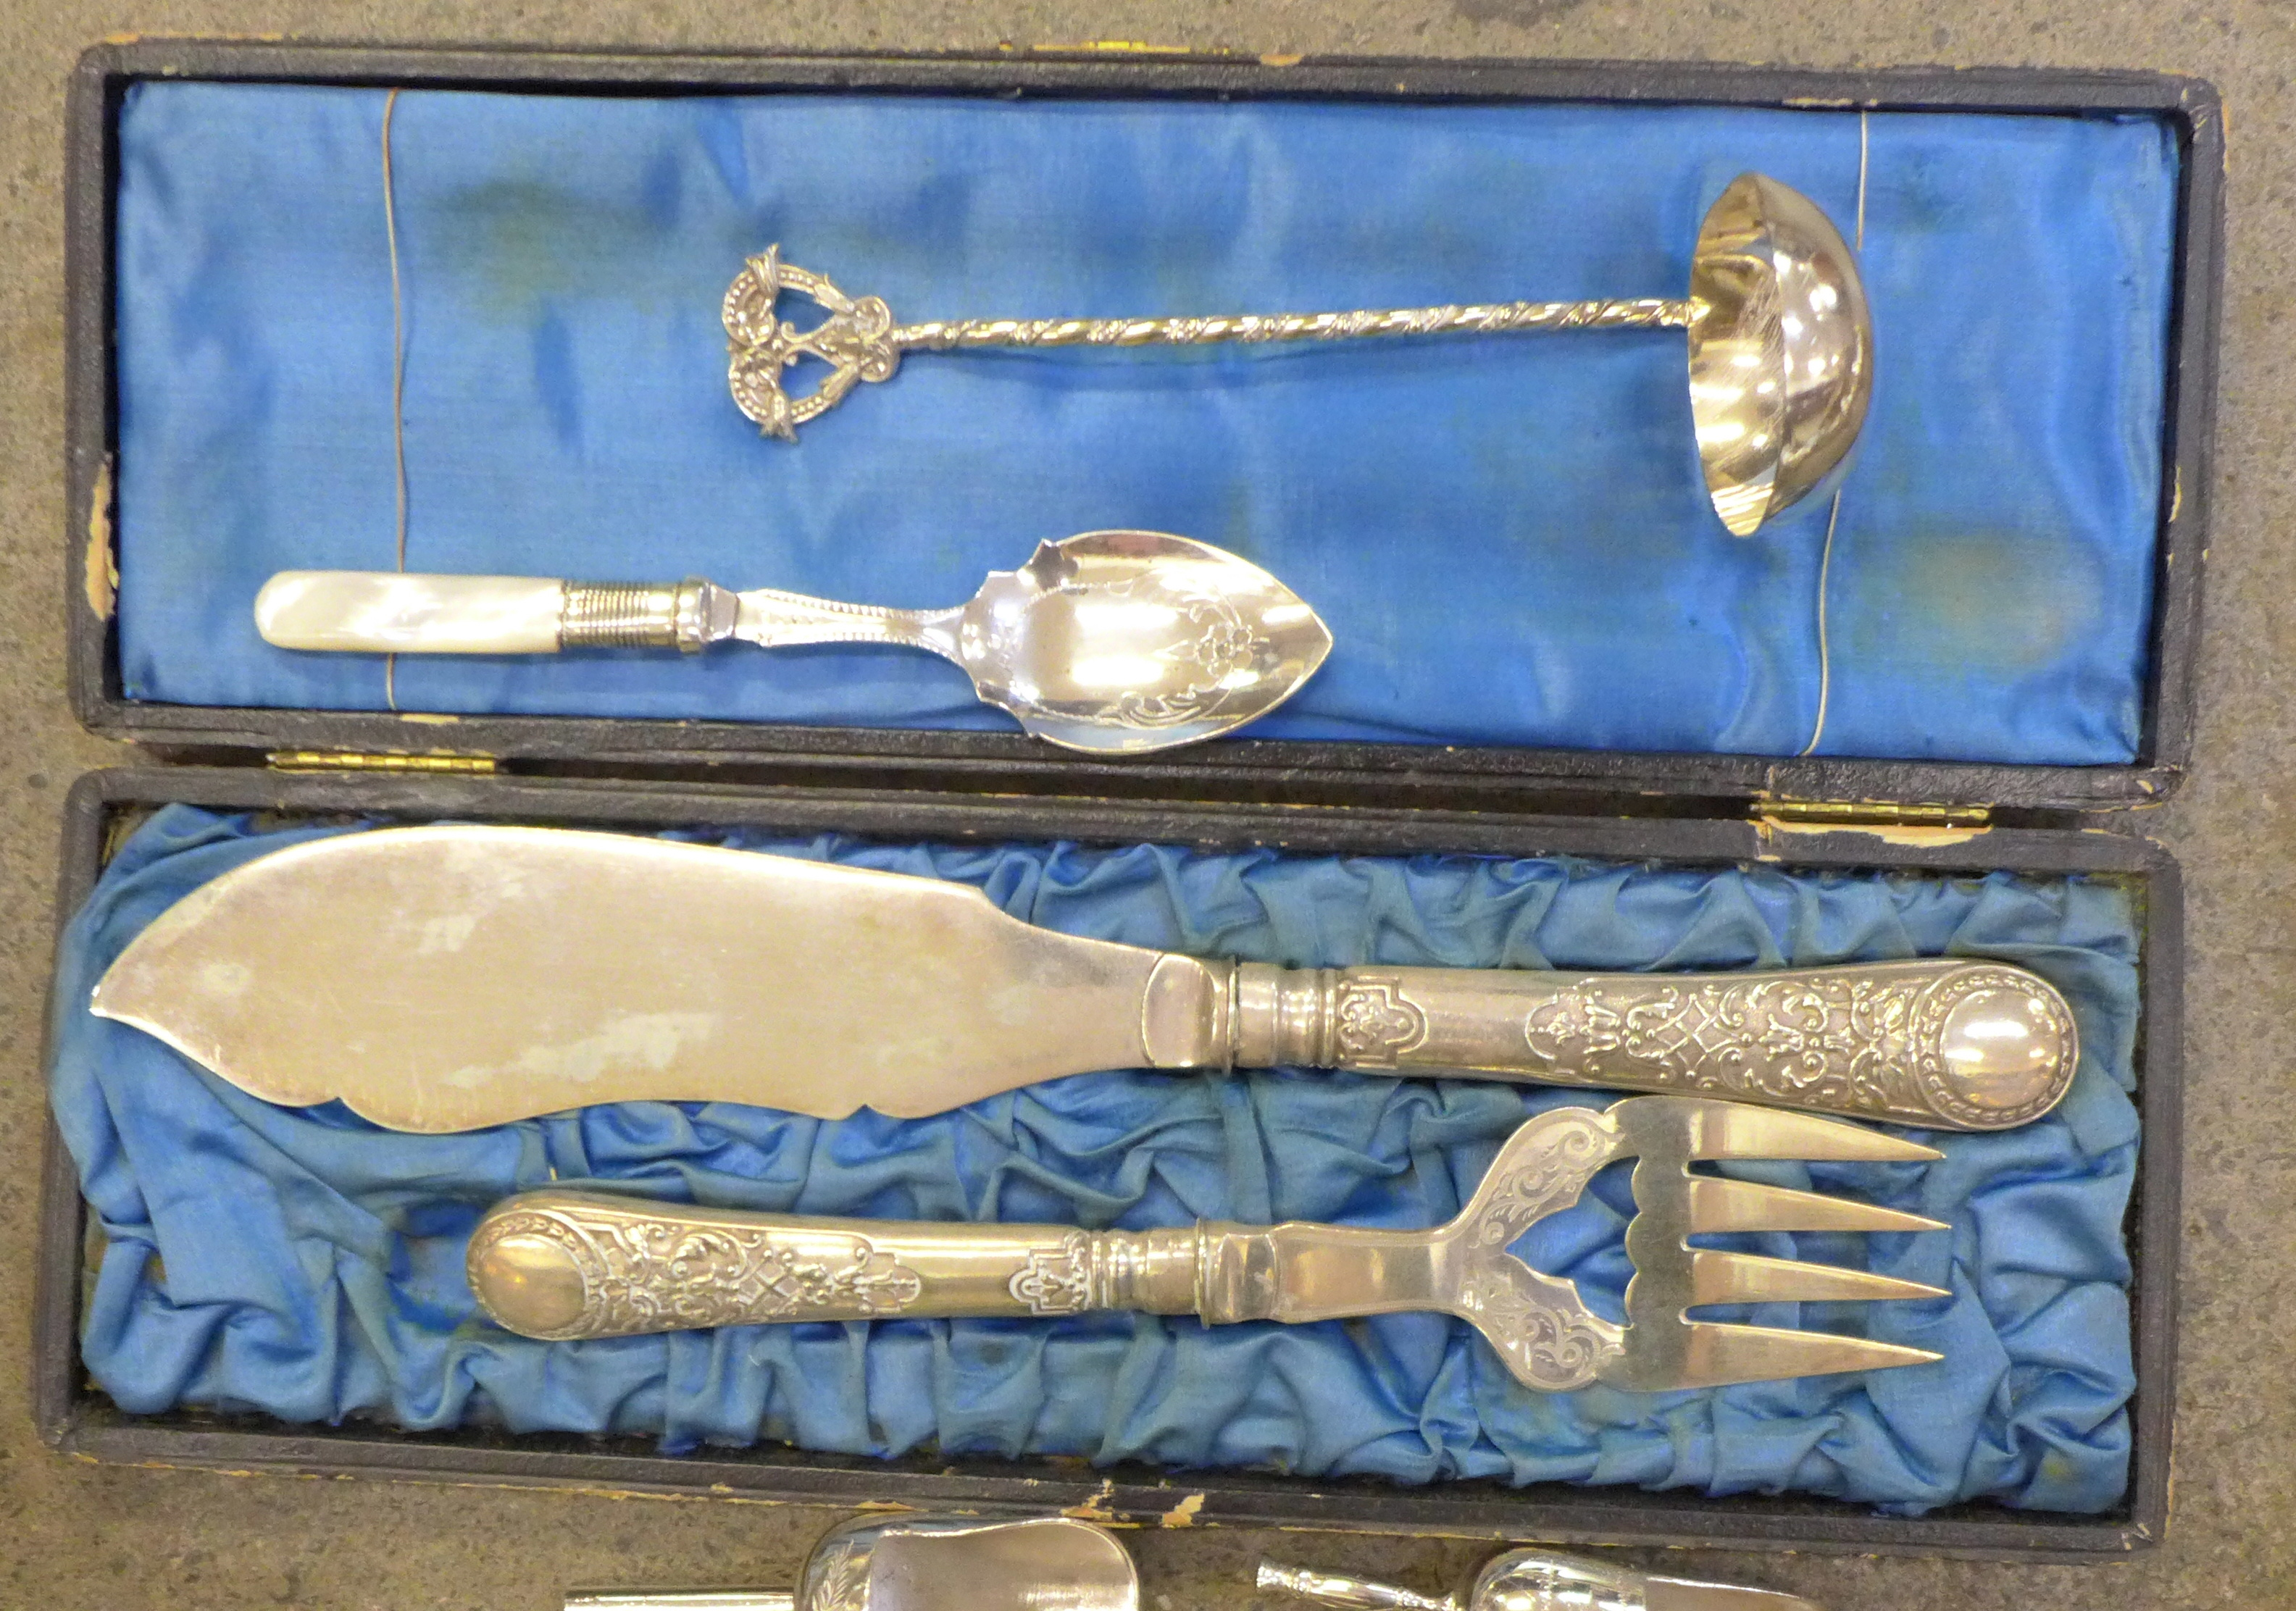 A collection of silver plate, candlesticks, an egg stand, etc. - Image 3 of 4